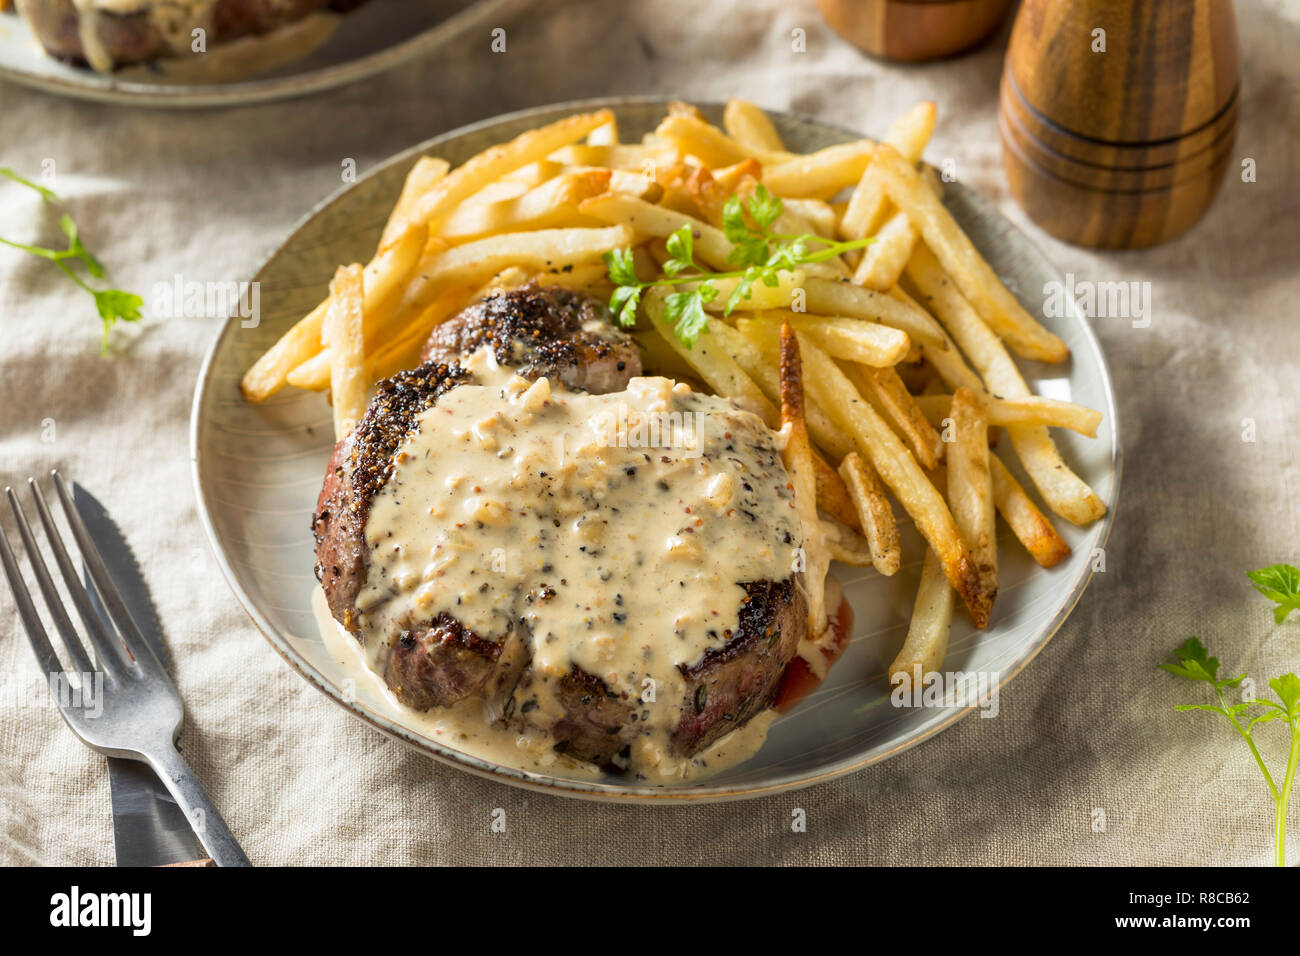 Homemade Steak Au Poivre with Pepper Sauce Stock Photo